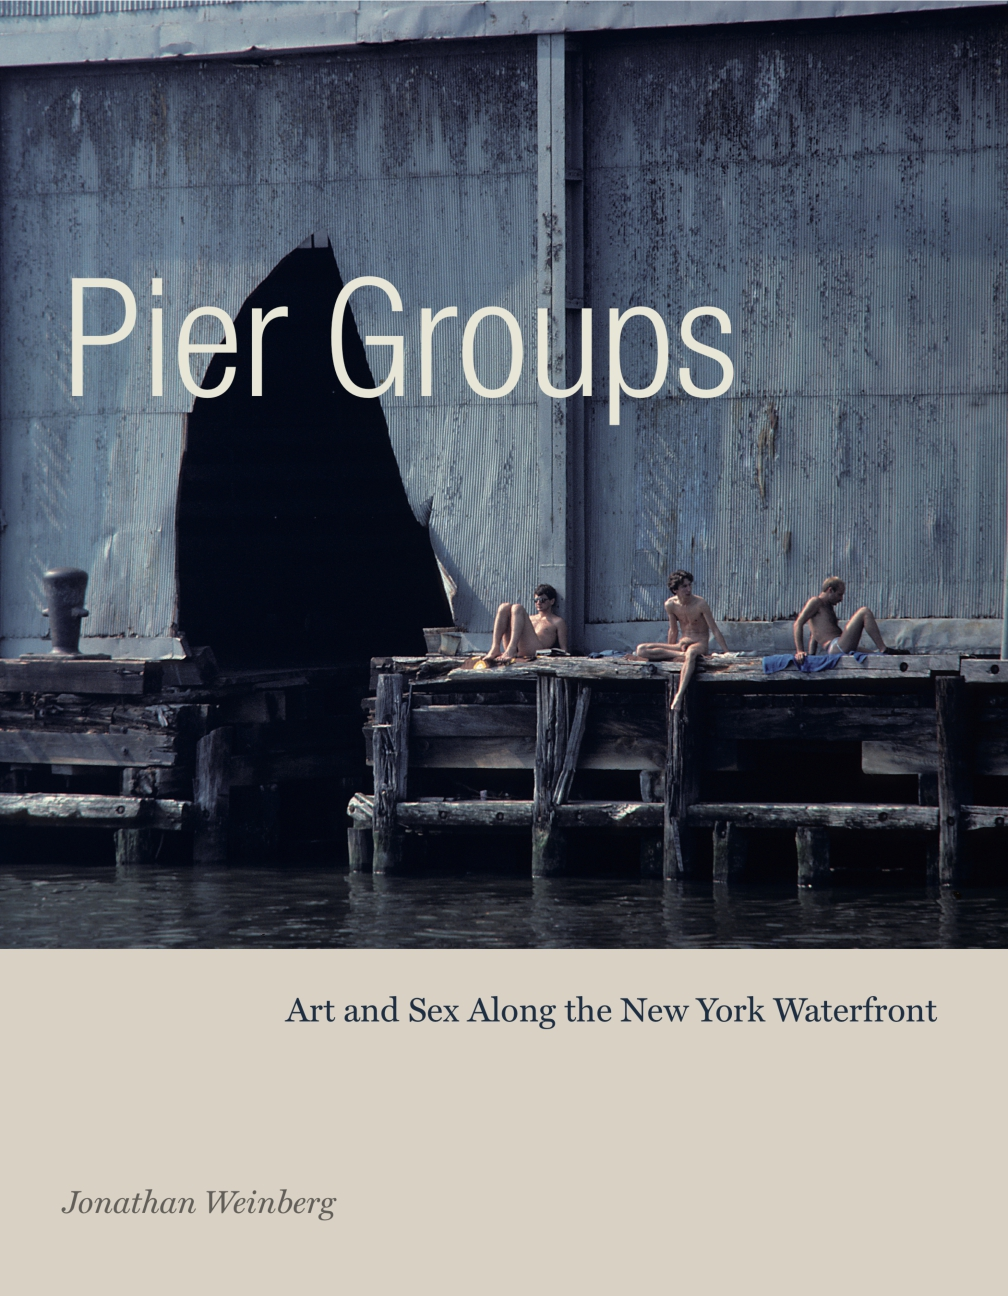 nyc piers book cover